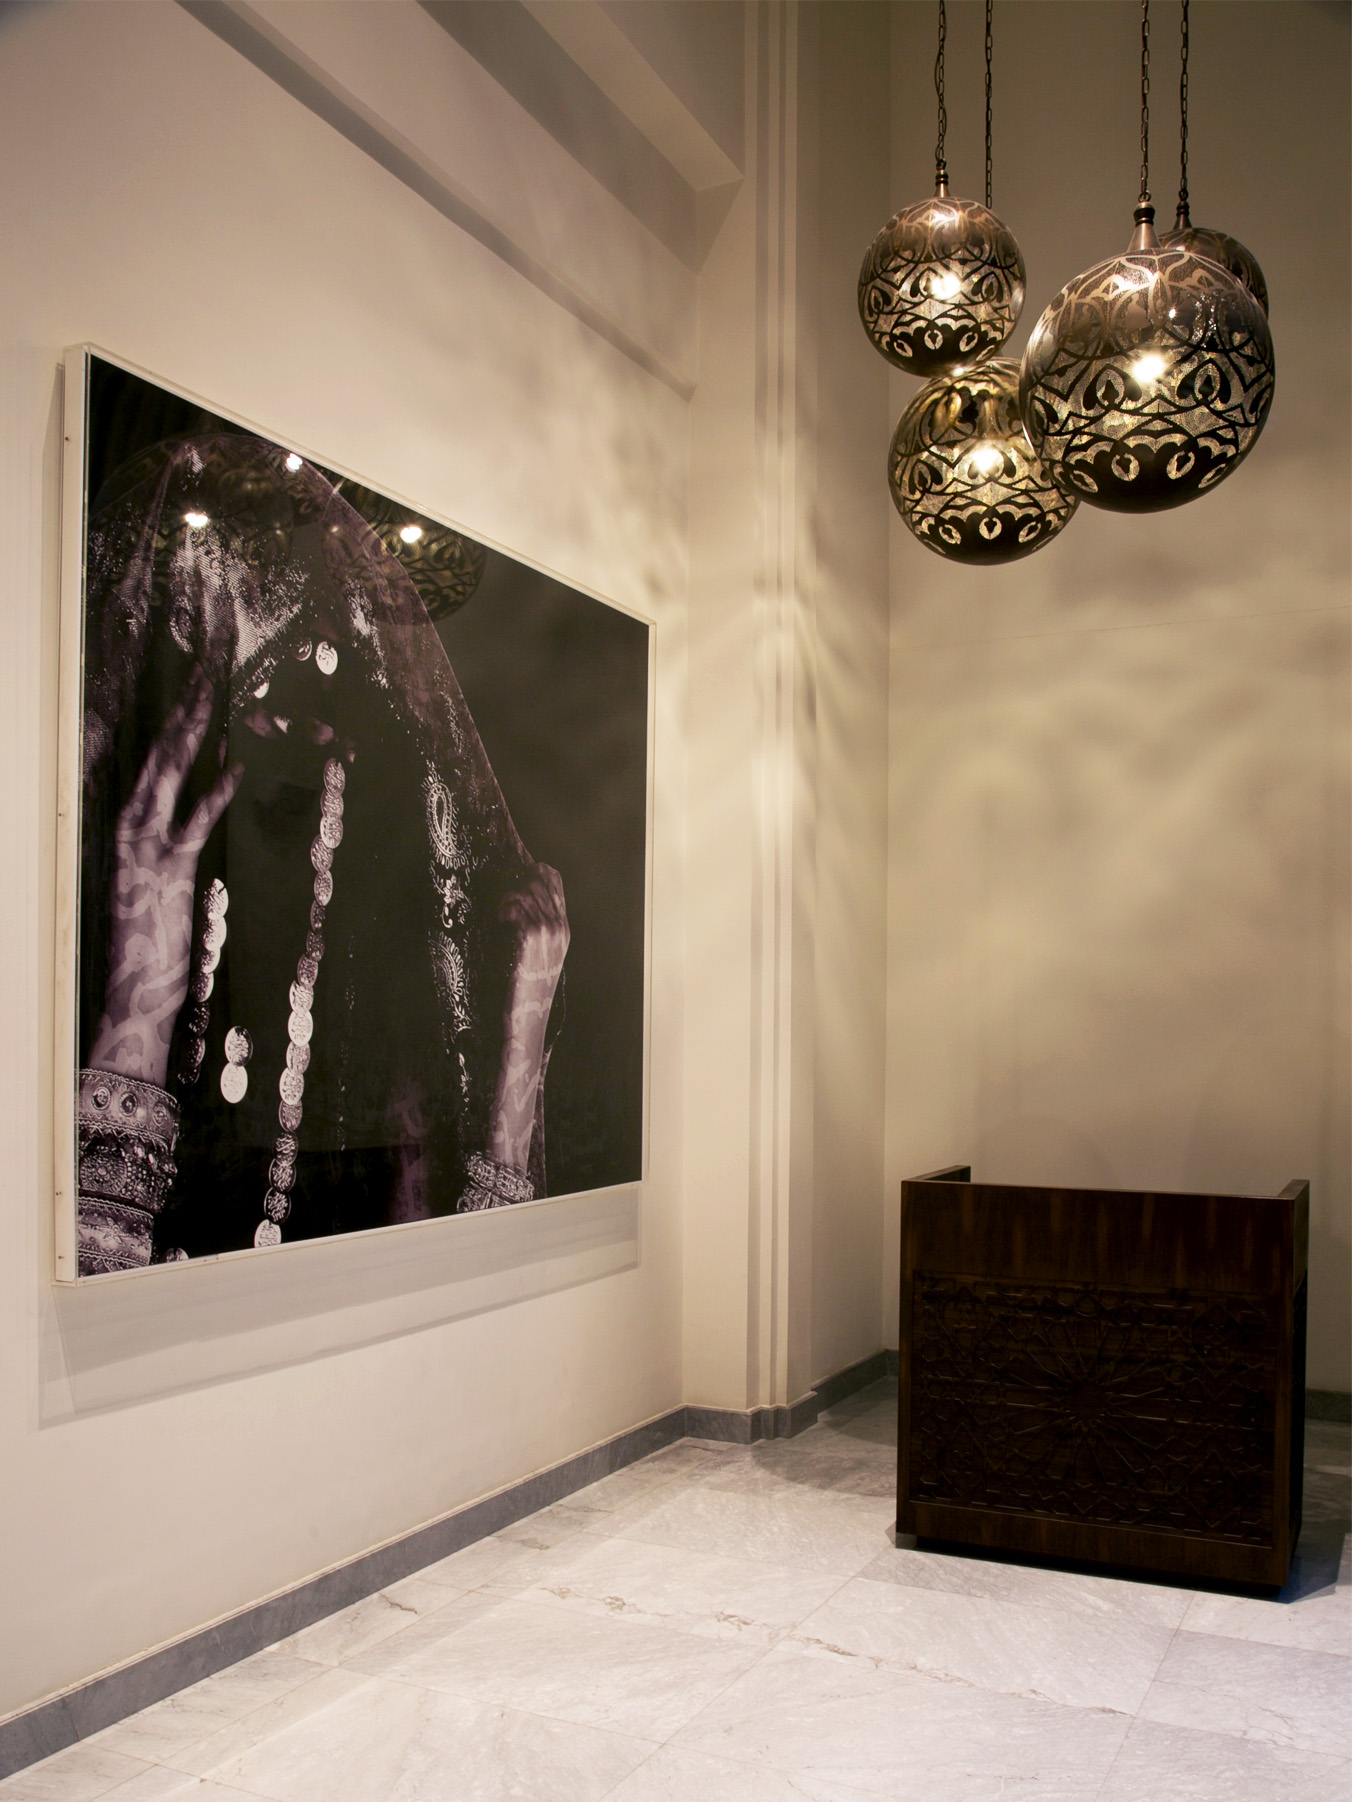 08-capsule-arts-projects-al-manzil-downtown-lobby.jpg